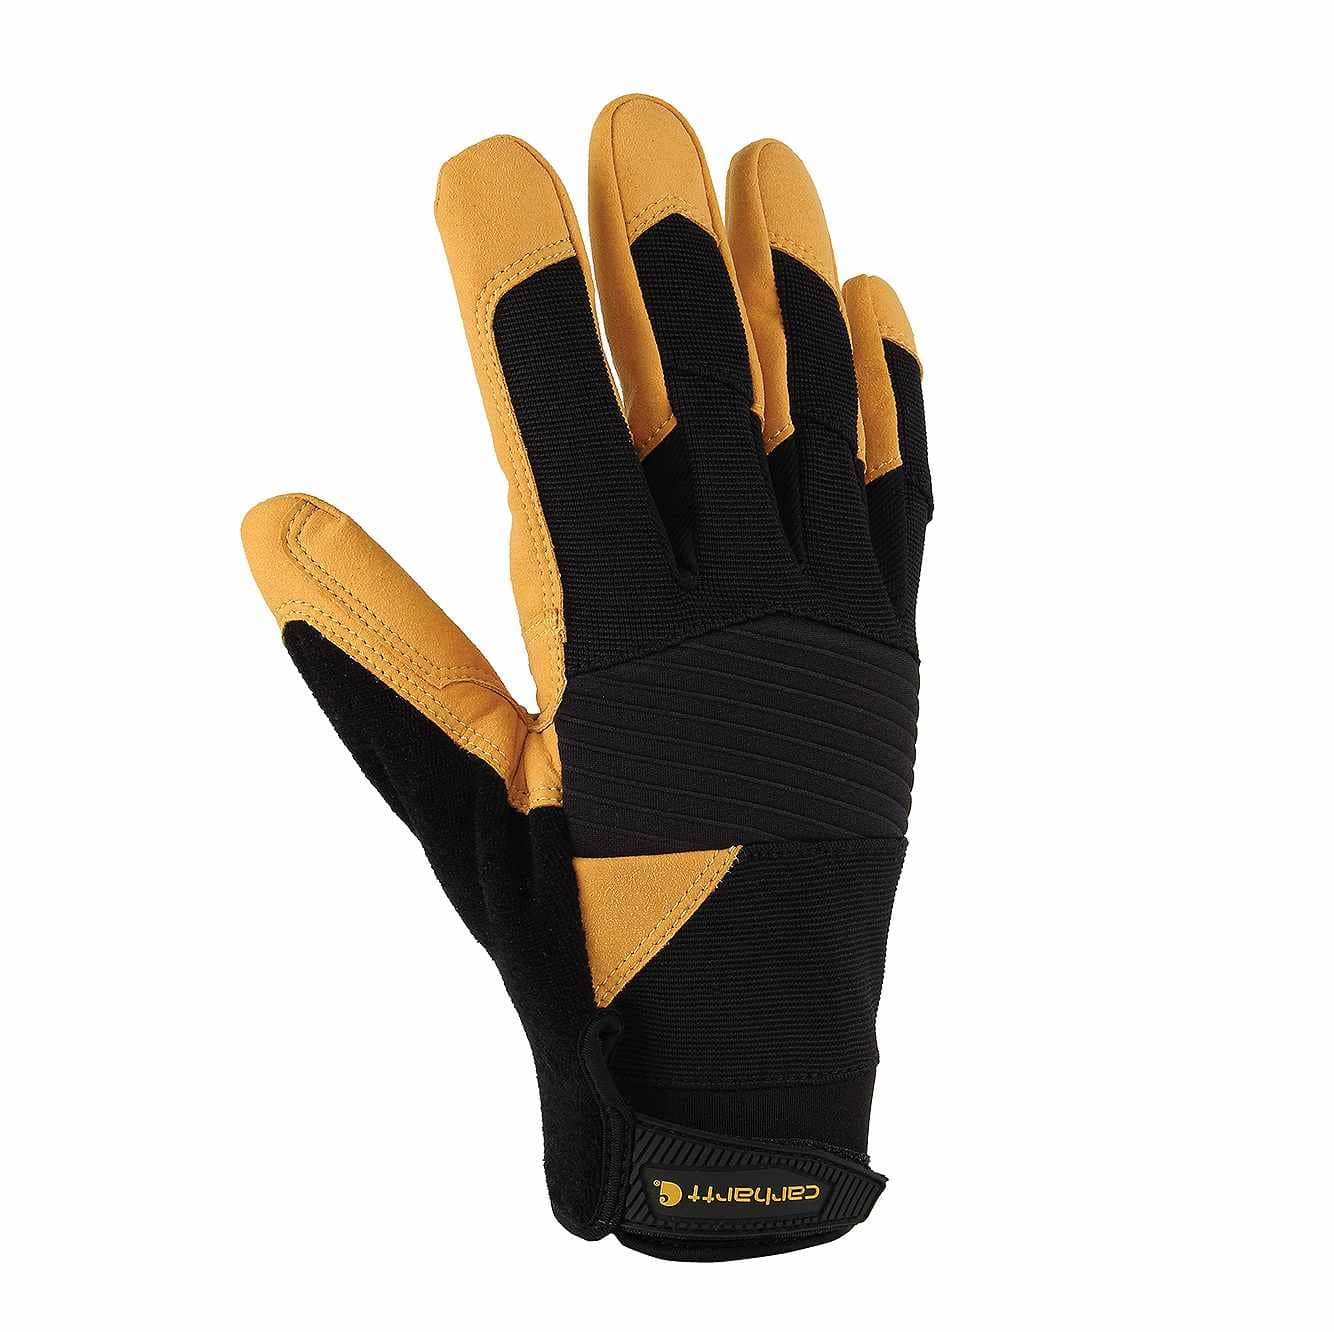 Picture of Flex Tough II High Dexterity Glove in Black Barley